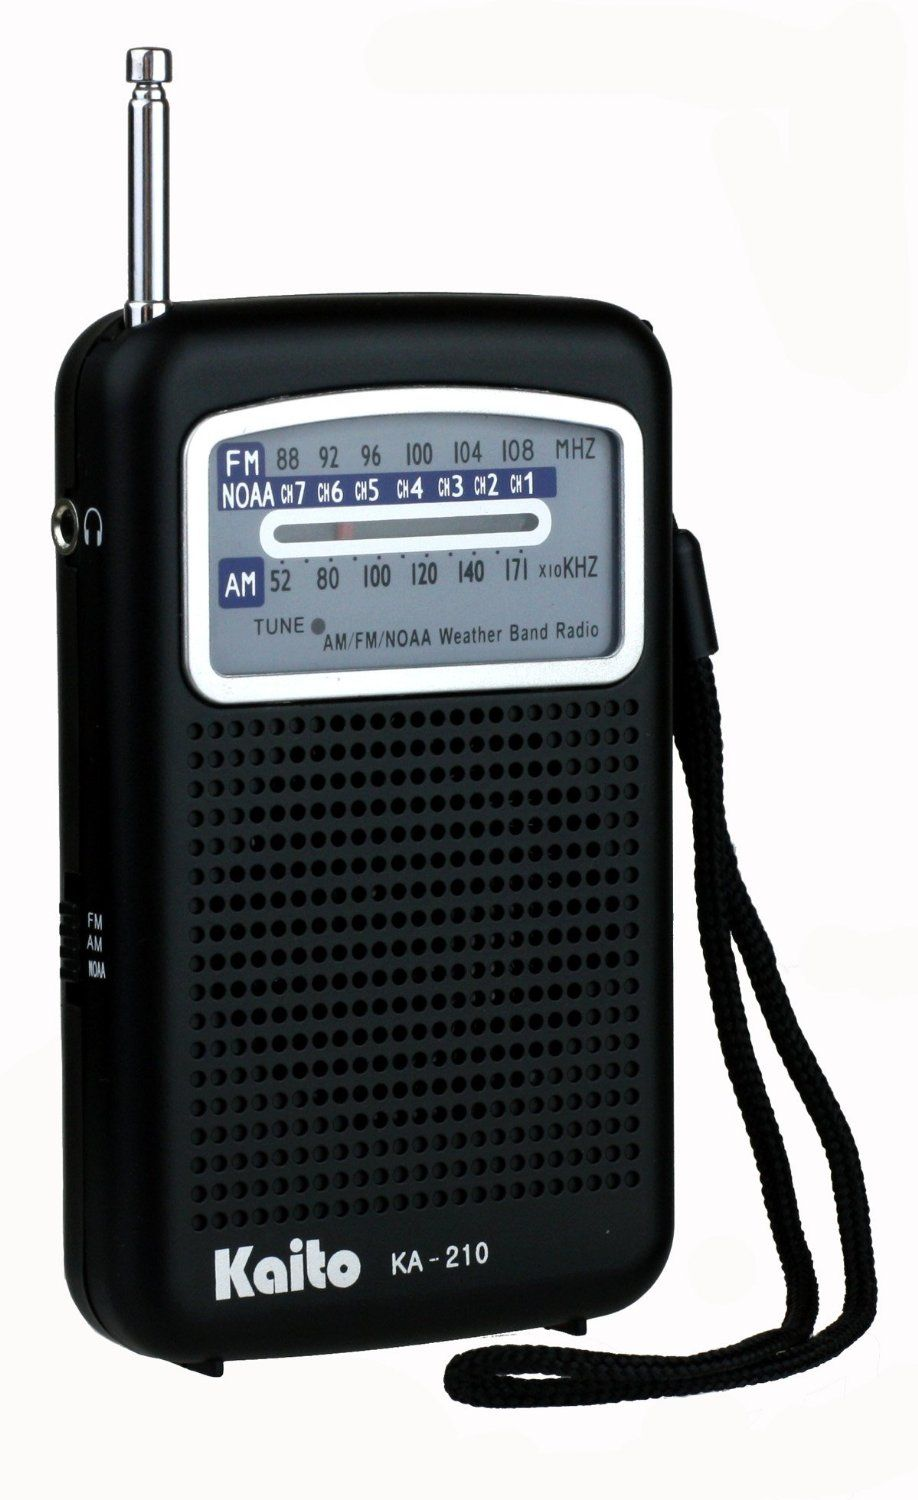 Top 10 Best Portable AM/FM Radios in 2016 | Top 10 Best